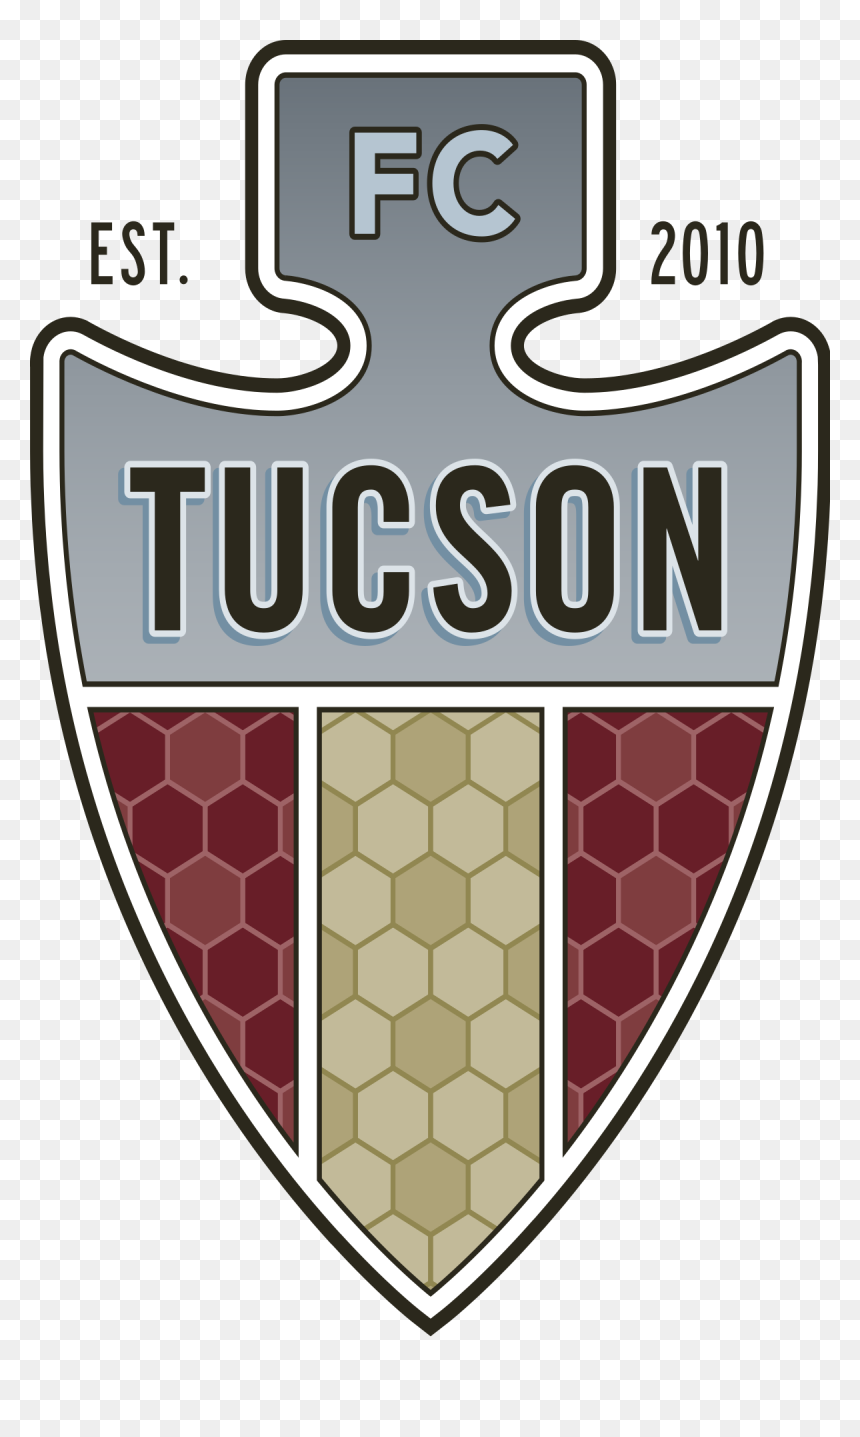 Liverpool Fc Official Football Crest Key Blank One Fc Tucson Logo Hd Png Download 1200x1950 Png Dlf Pt